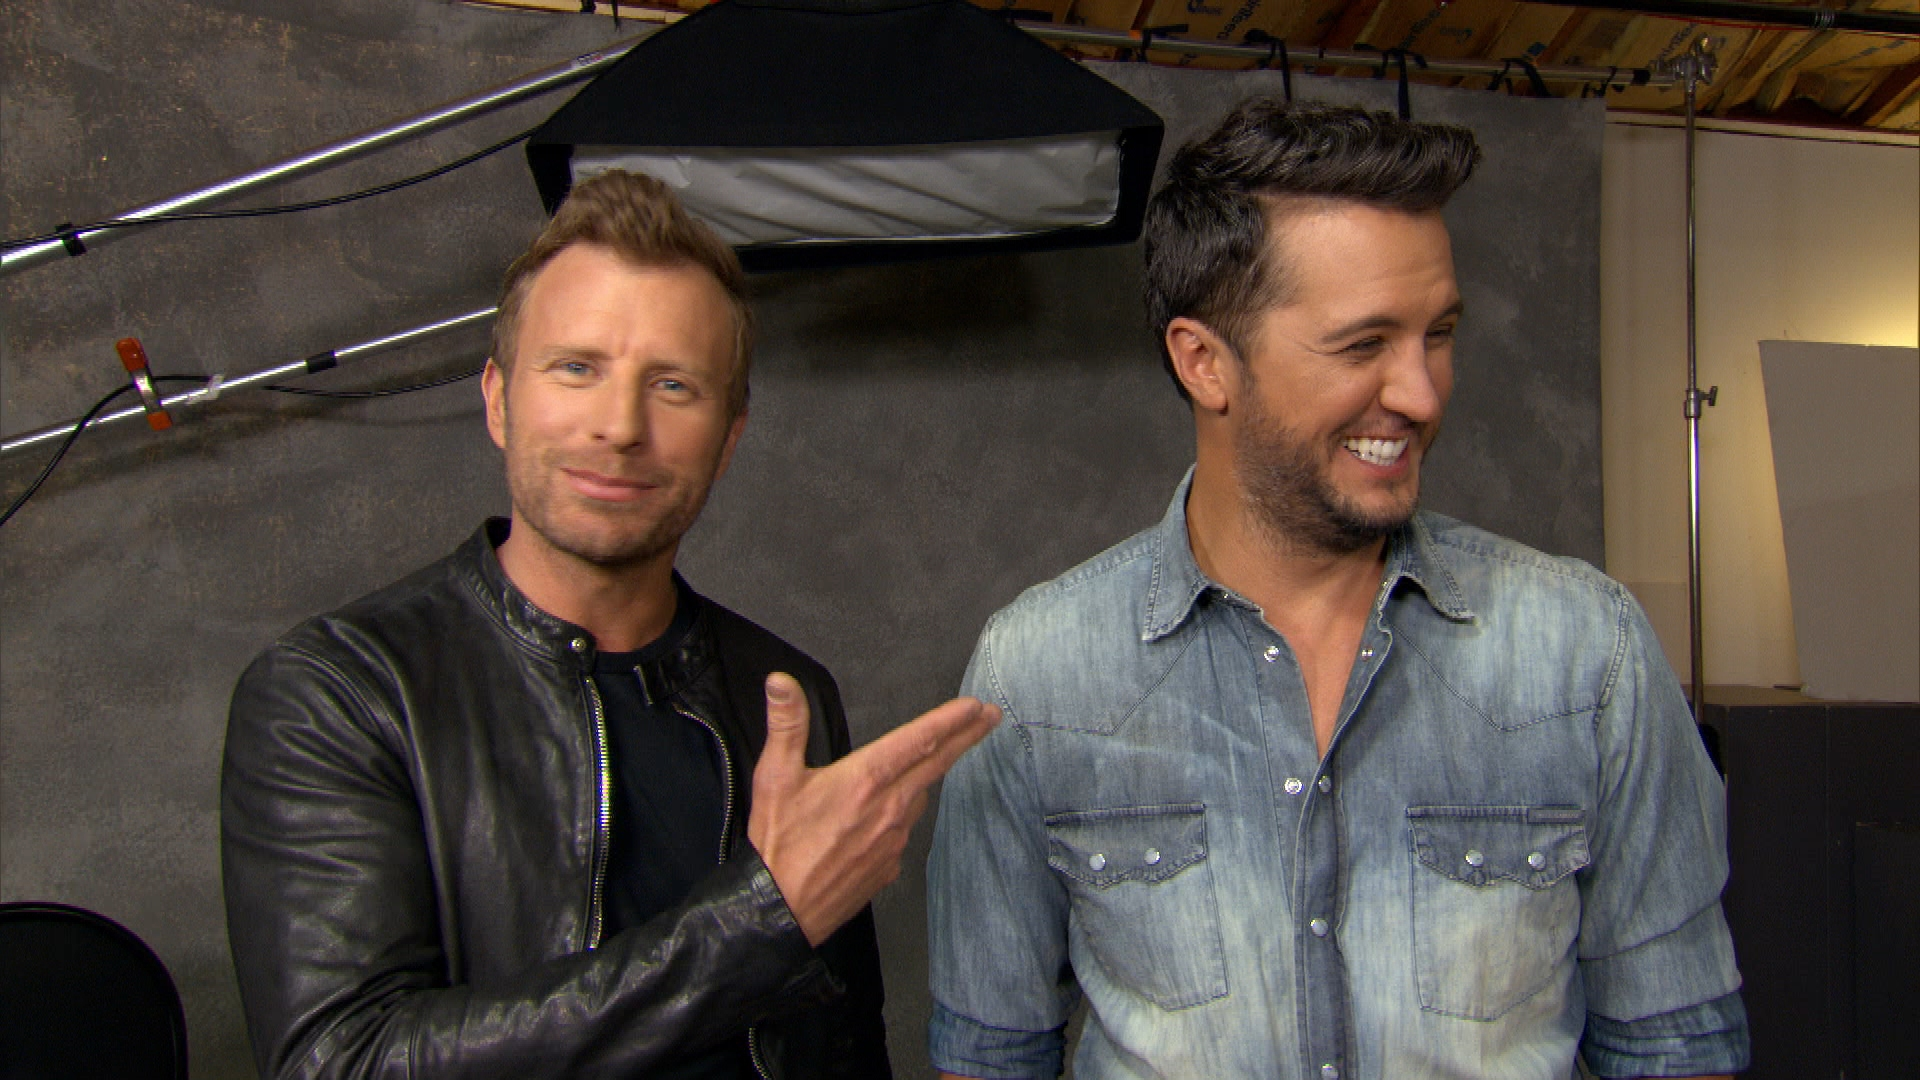 Dierks Bentley Hosting 2016 ACM Awards Naked?